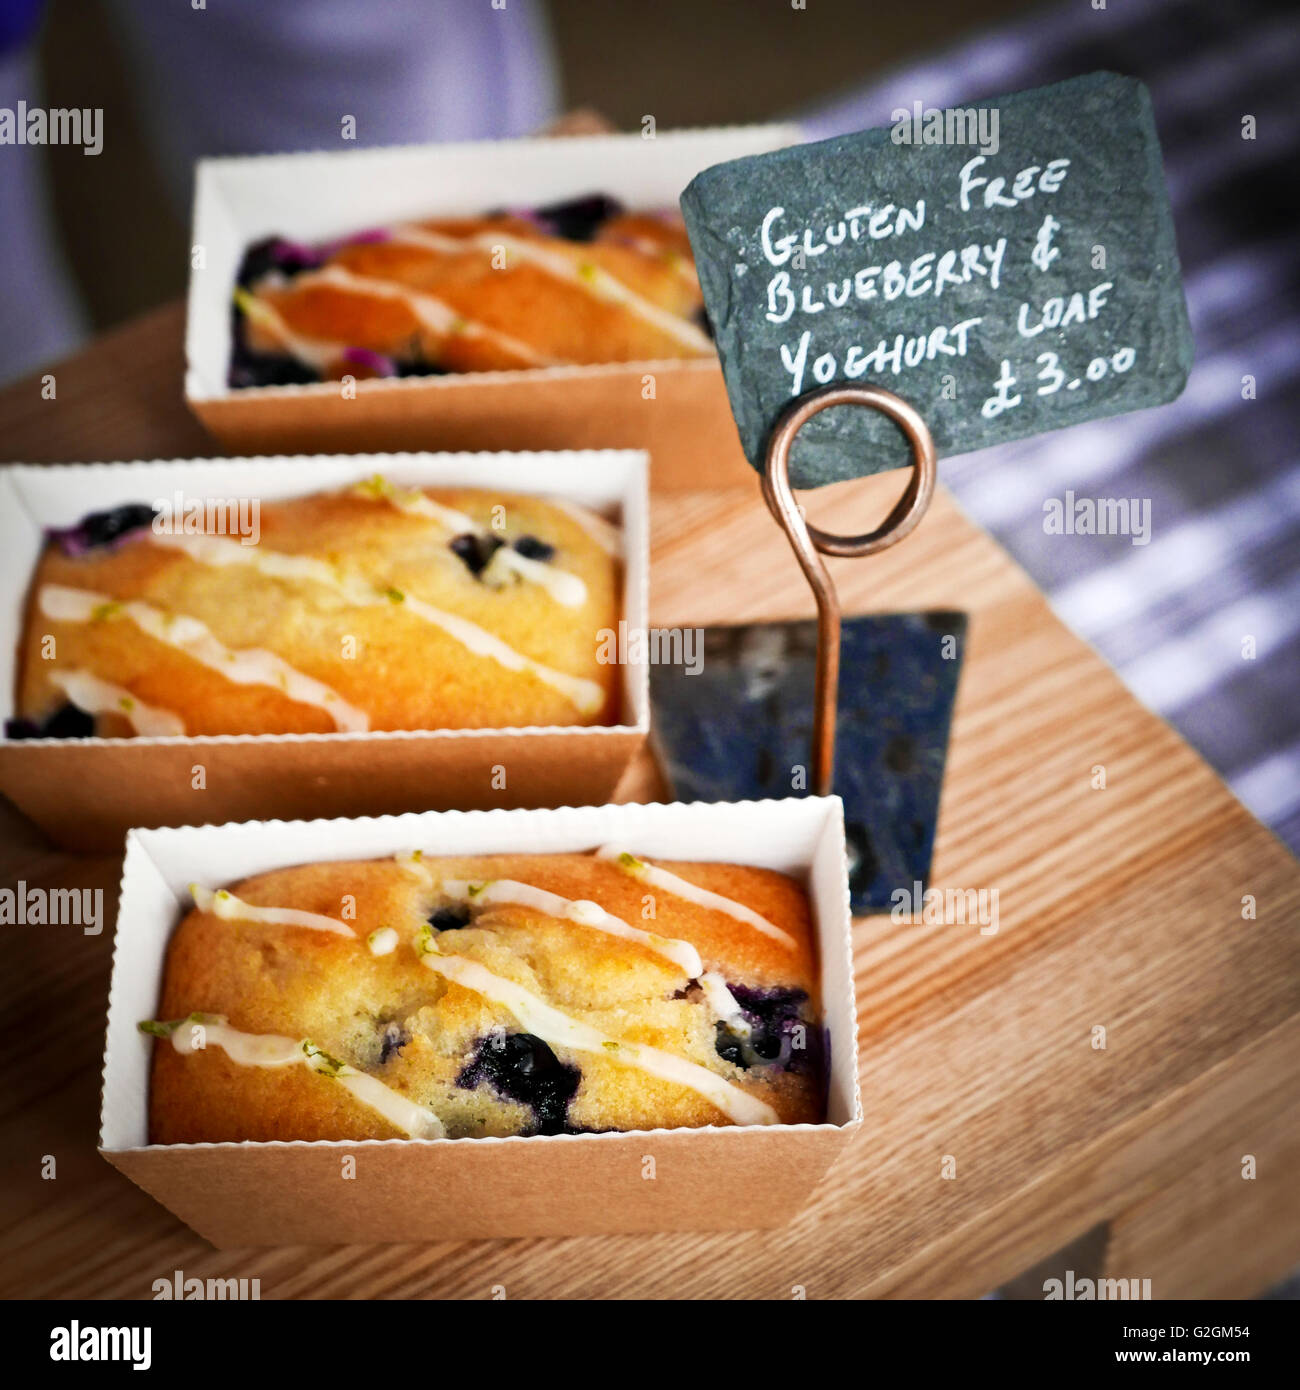 Gluten free blueberry and yoghurt loaf at Wansteads monthly Farmers Market, Wanstead, London - Stock Image